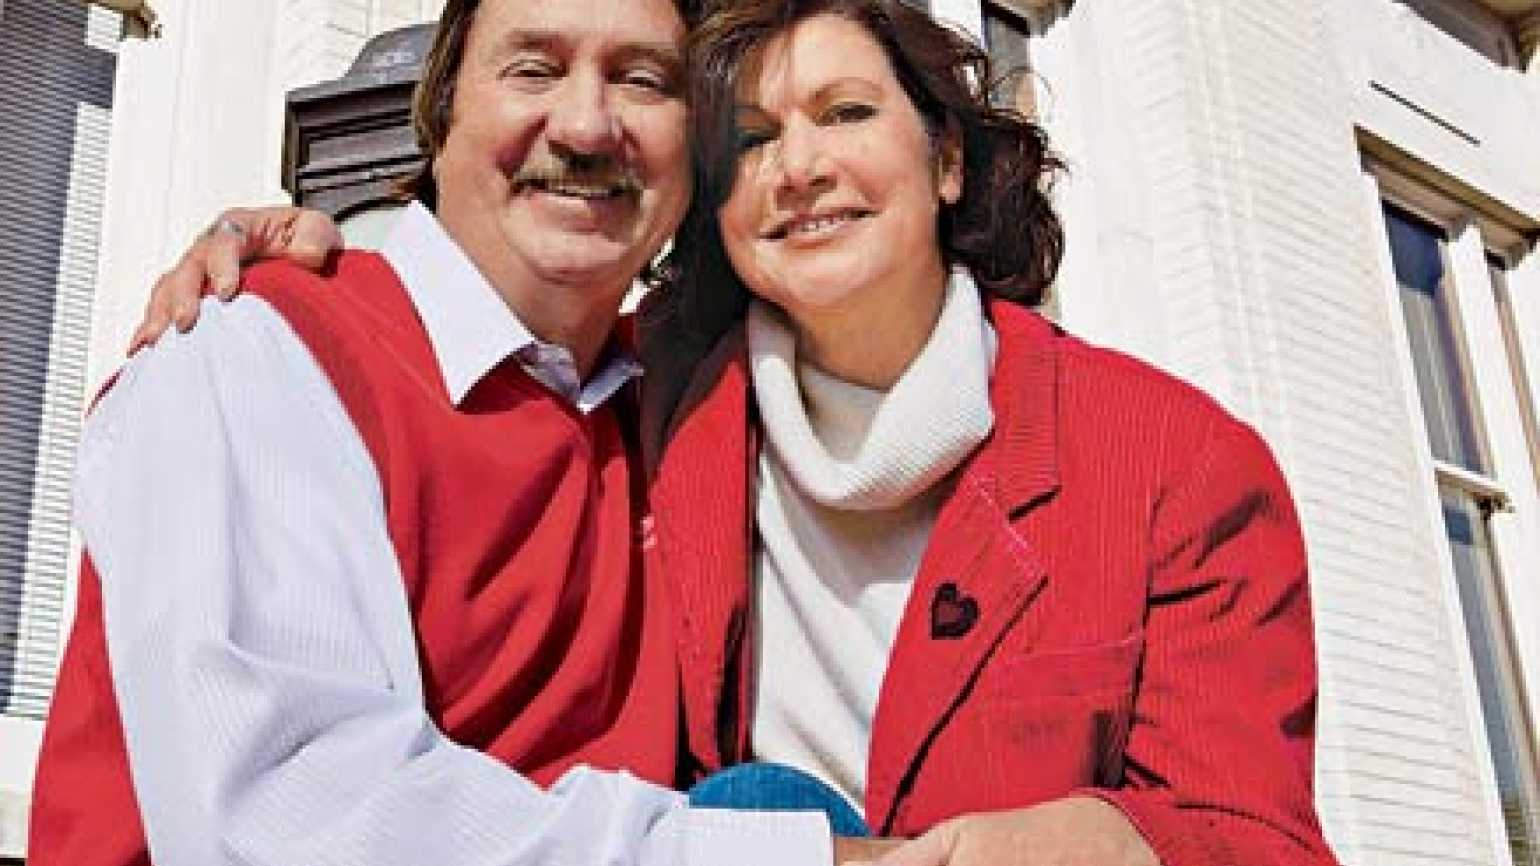 Duane Kaye and his wife, Jeanette